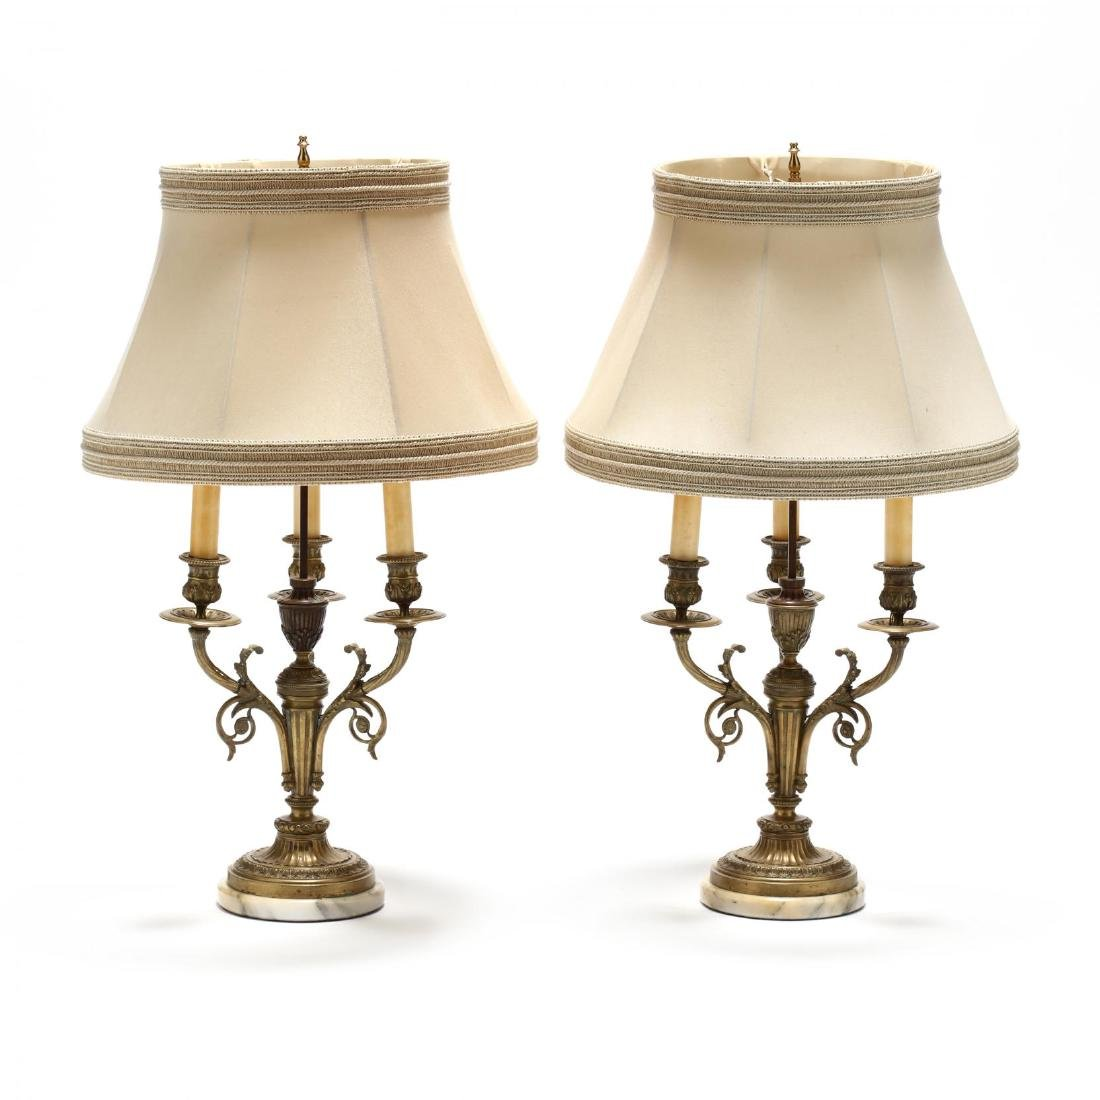 Pair of French Classical Style Table Lamps